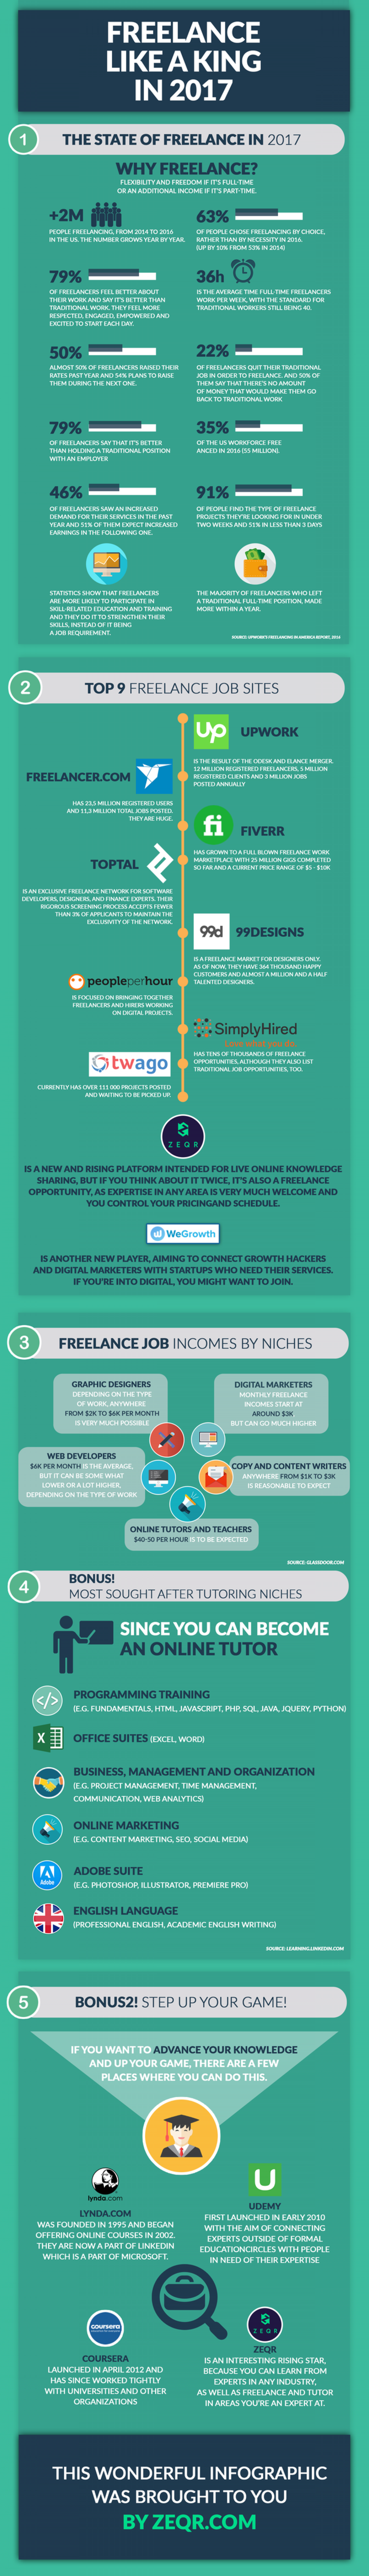 Freelance like a king in 2017 Infographic